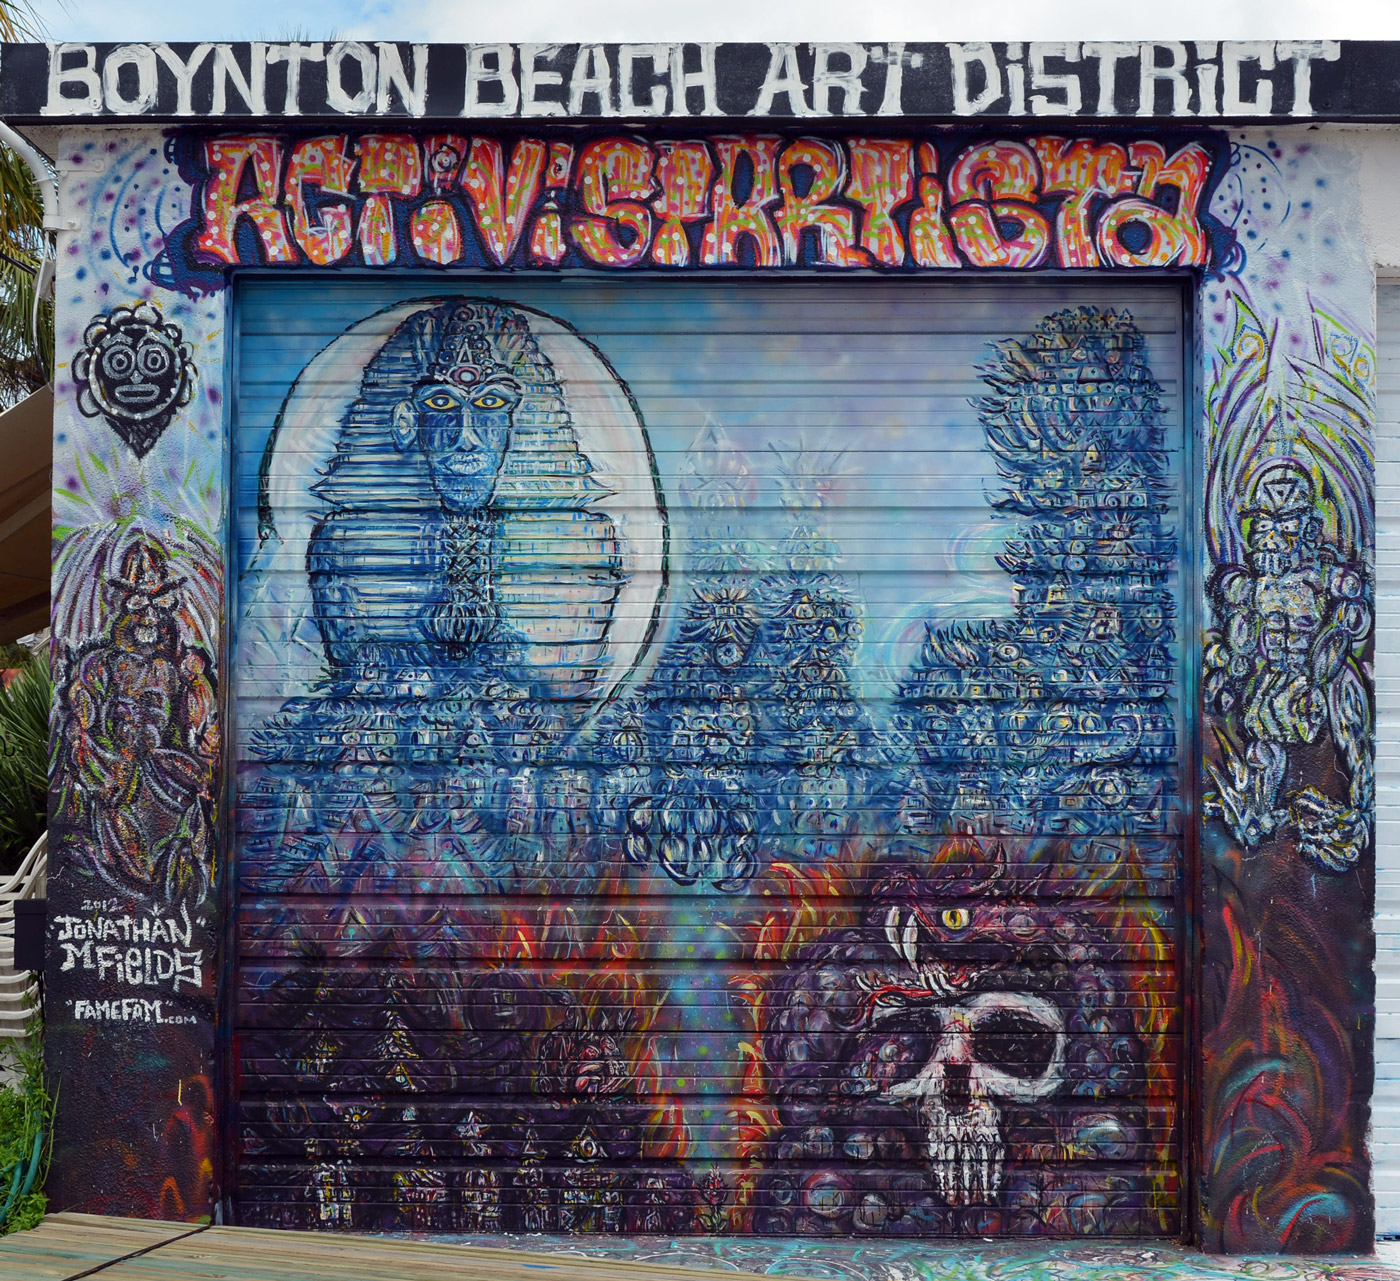 Boynton Beach Art District Mural Street Art